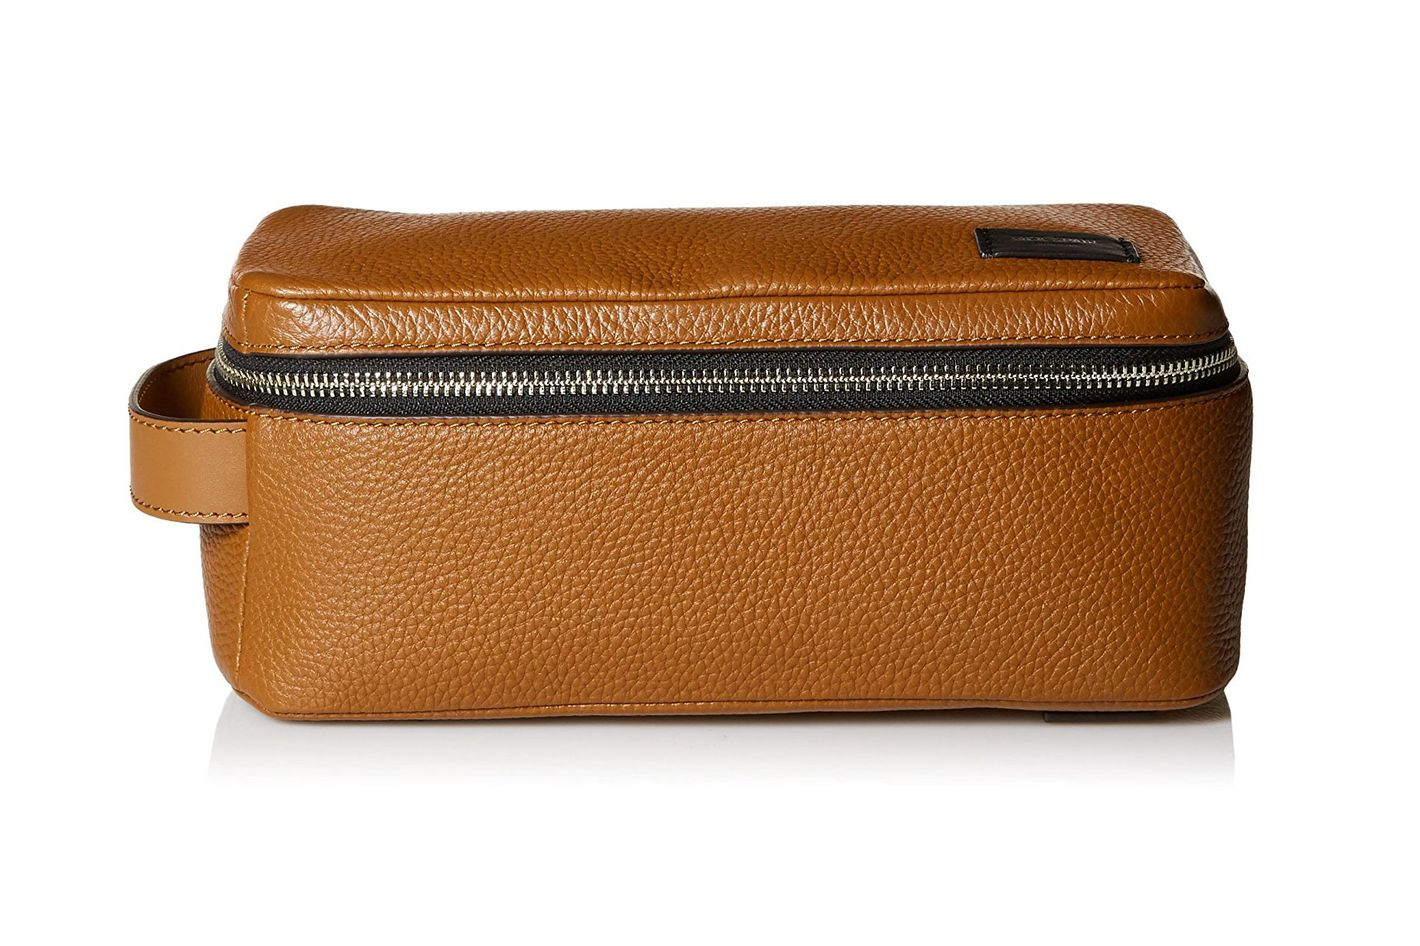 11 Best Dopp Kits and Toiletry Bags for Men